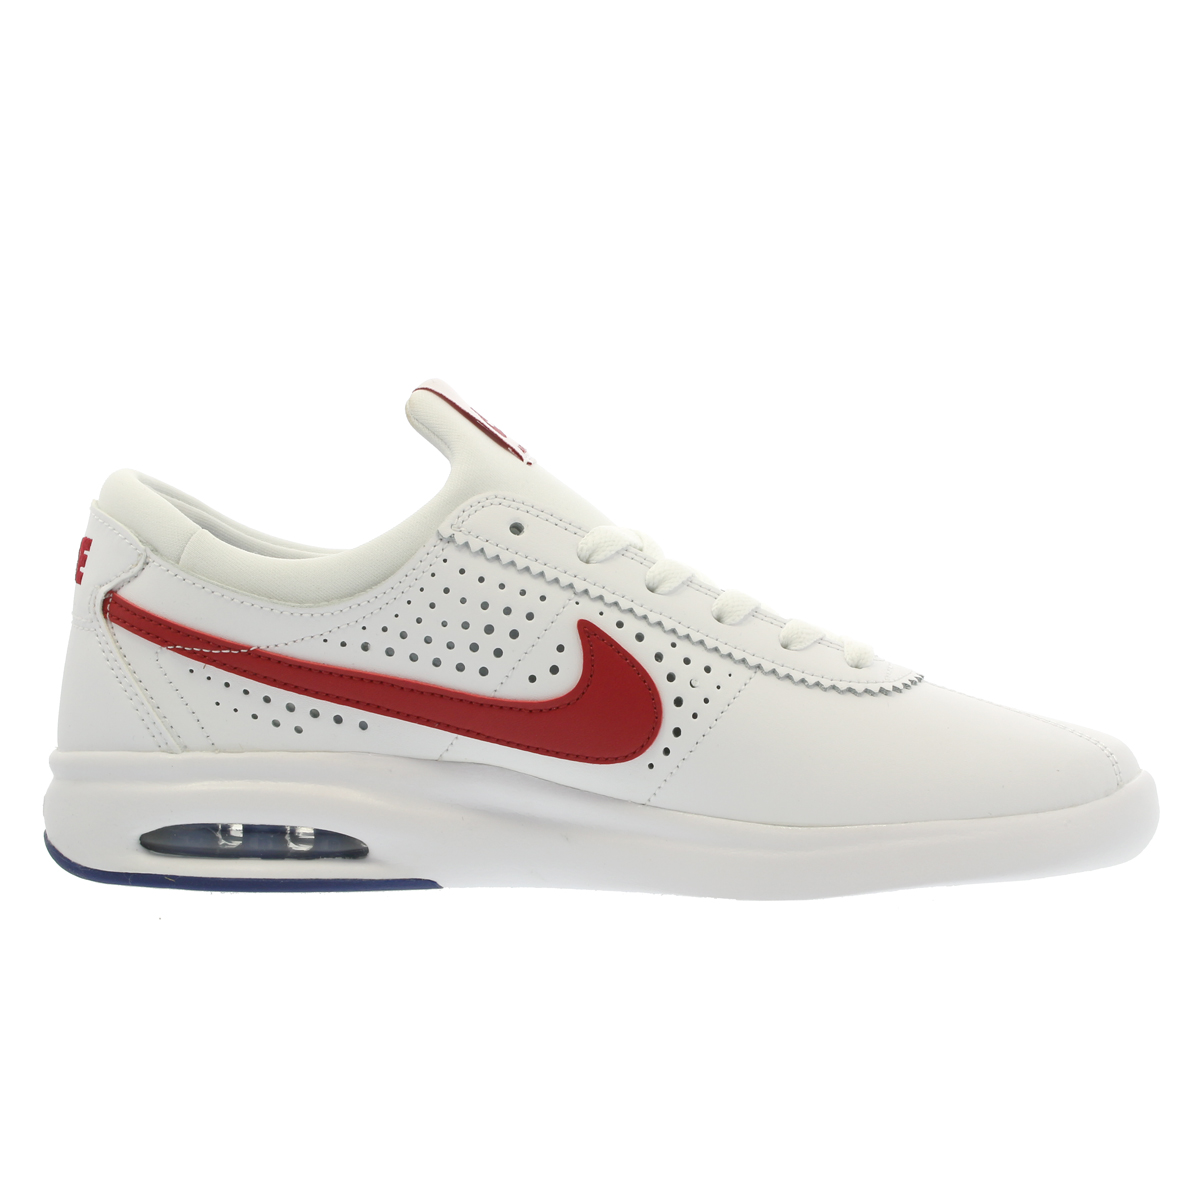 free shipping low price Nike SB Bruin Max Vapor Trainers In White 882097-100 outlet Manchester tZ17FW